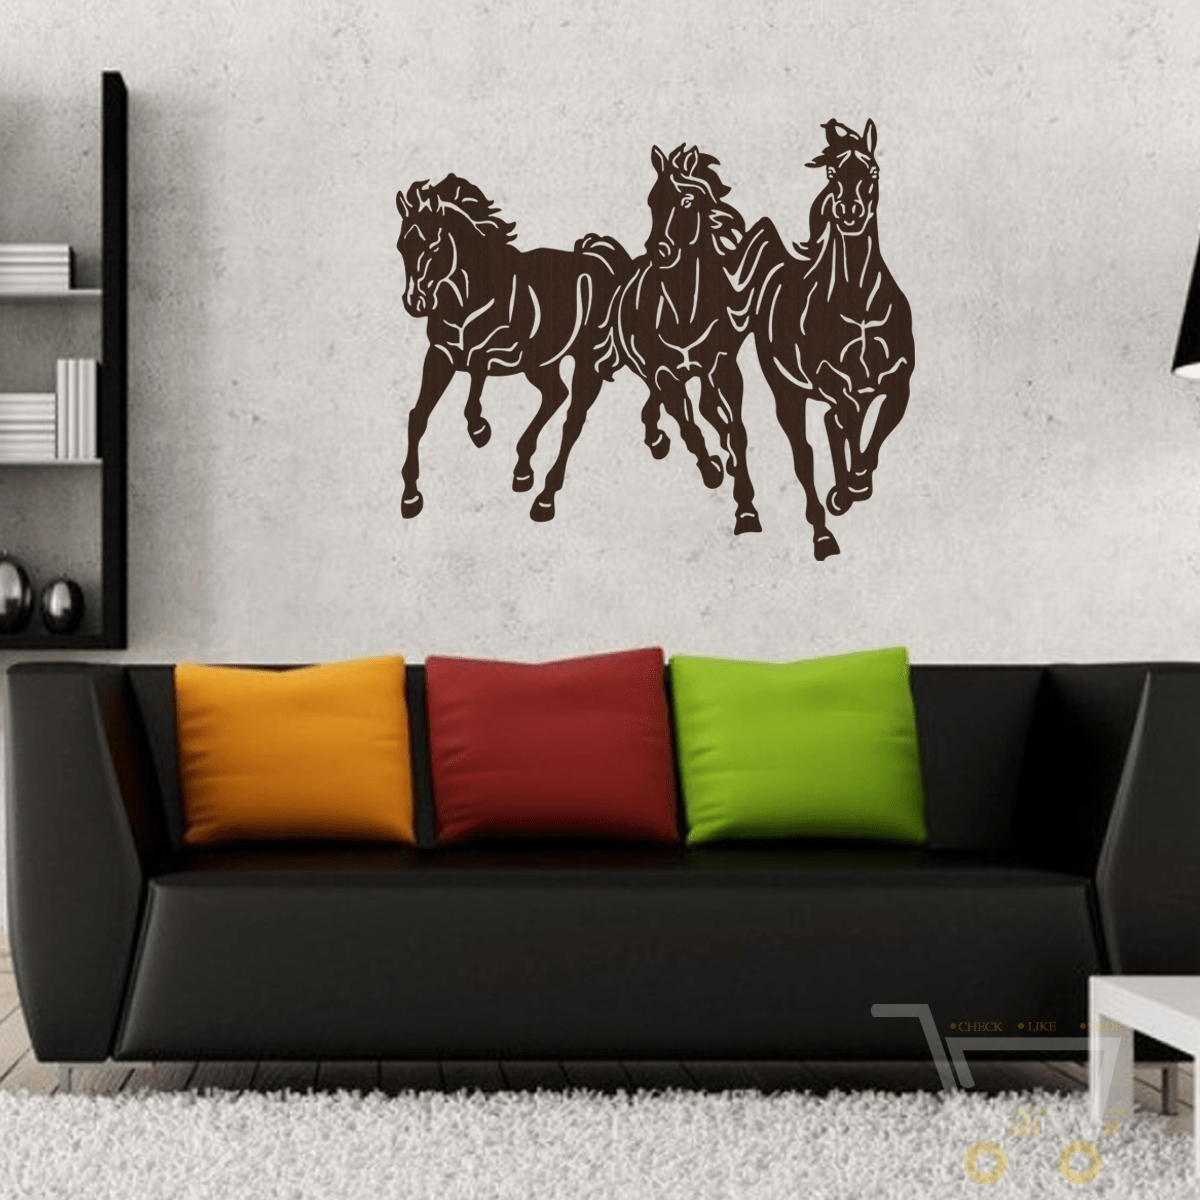 Handmade Wood Wall Art 3 Horses ( Not Sticker) - WikiWii